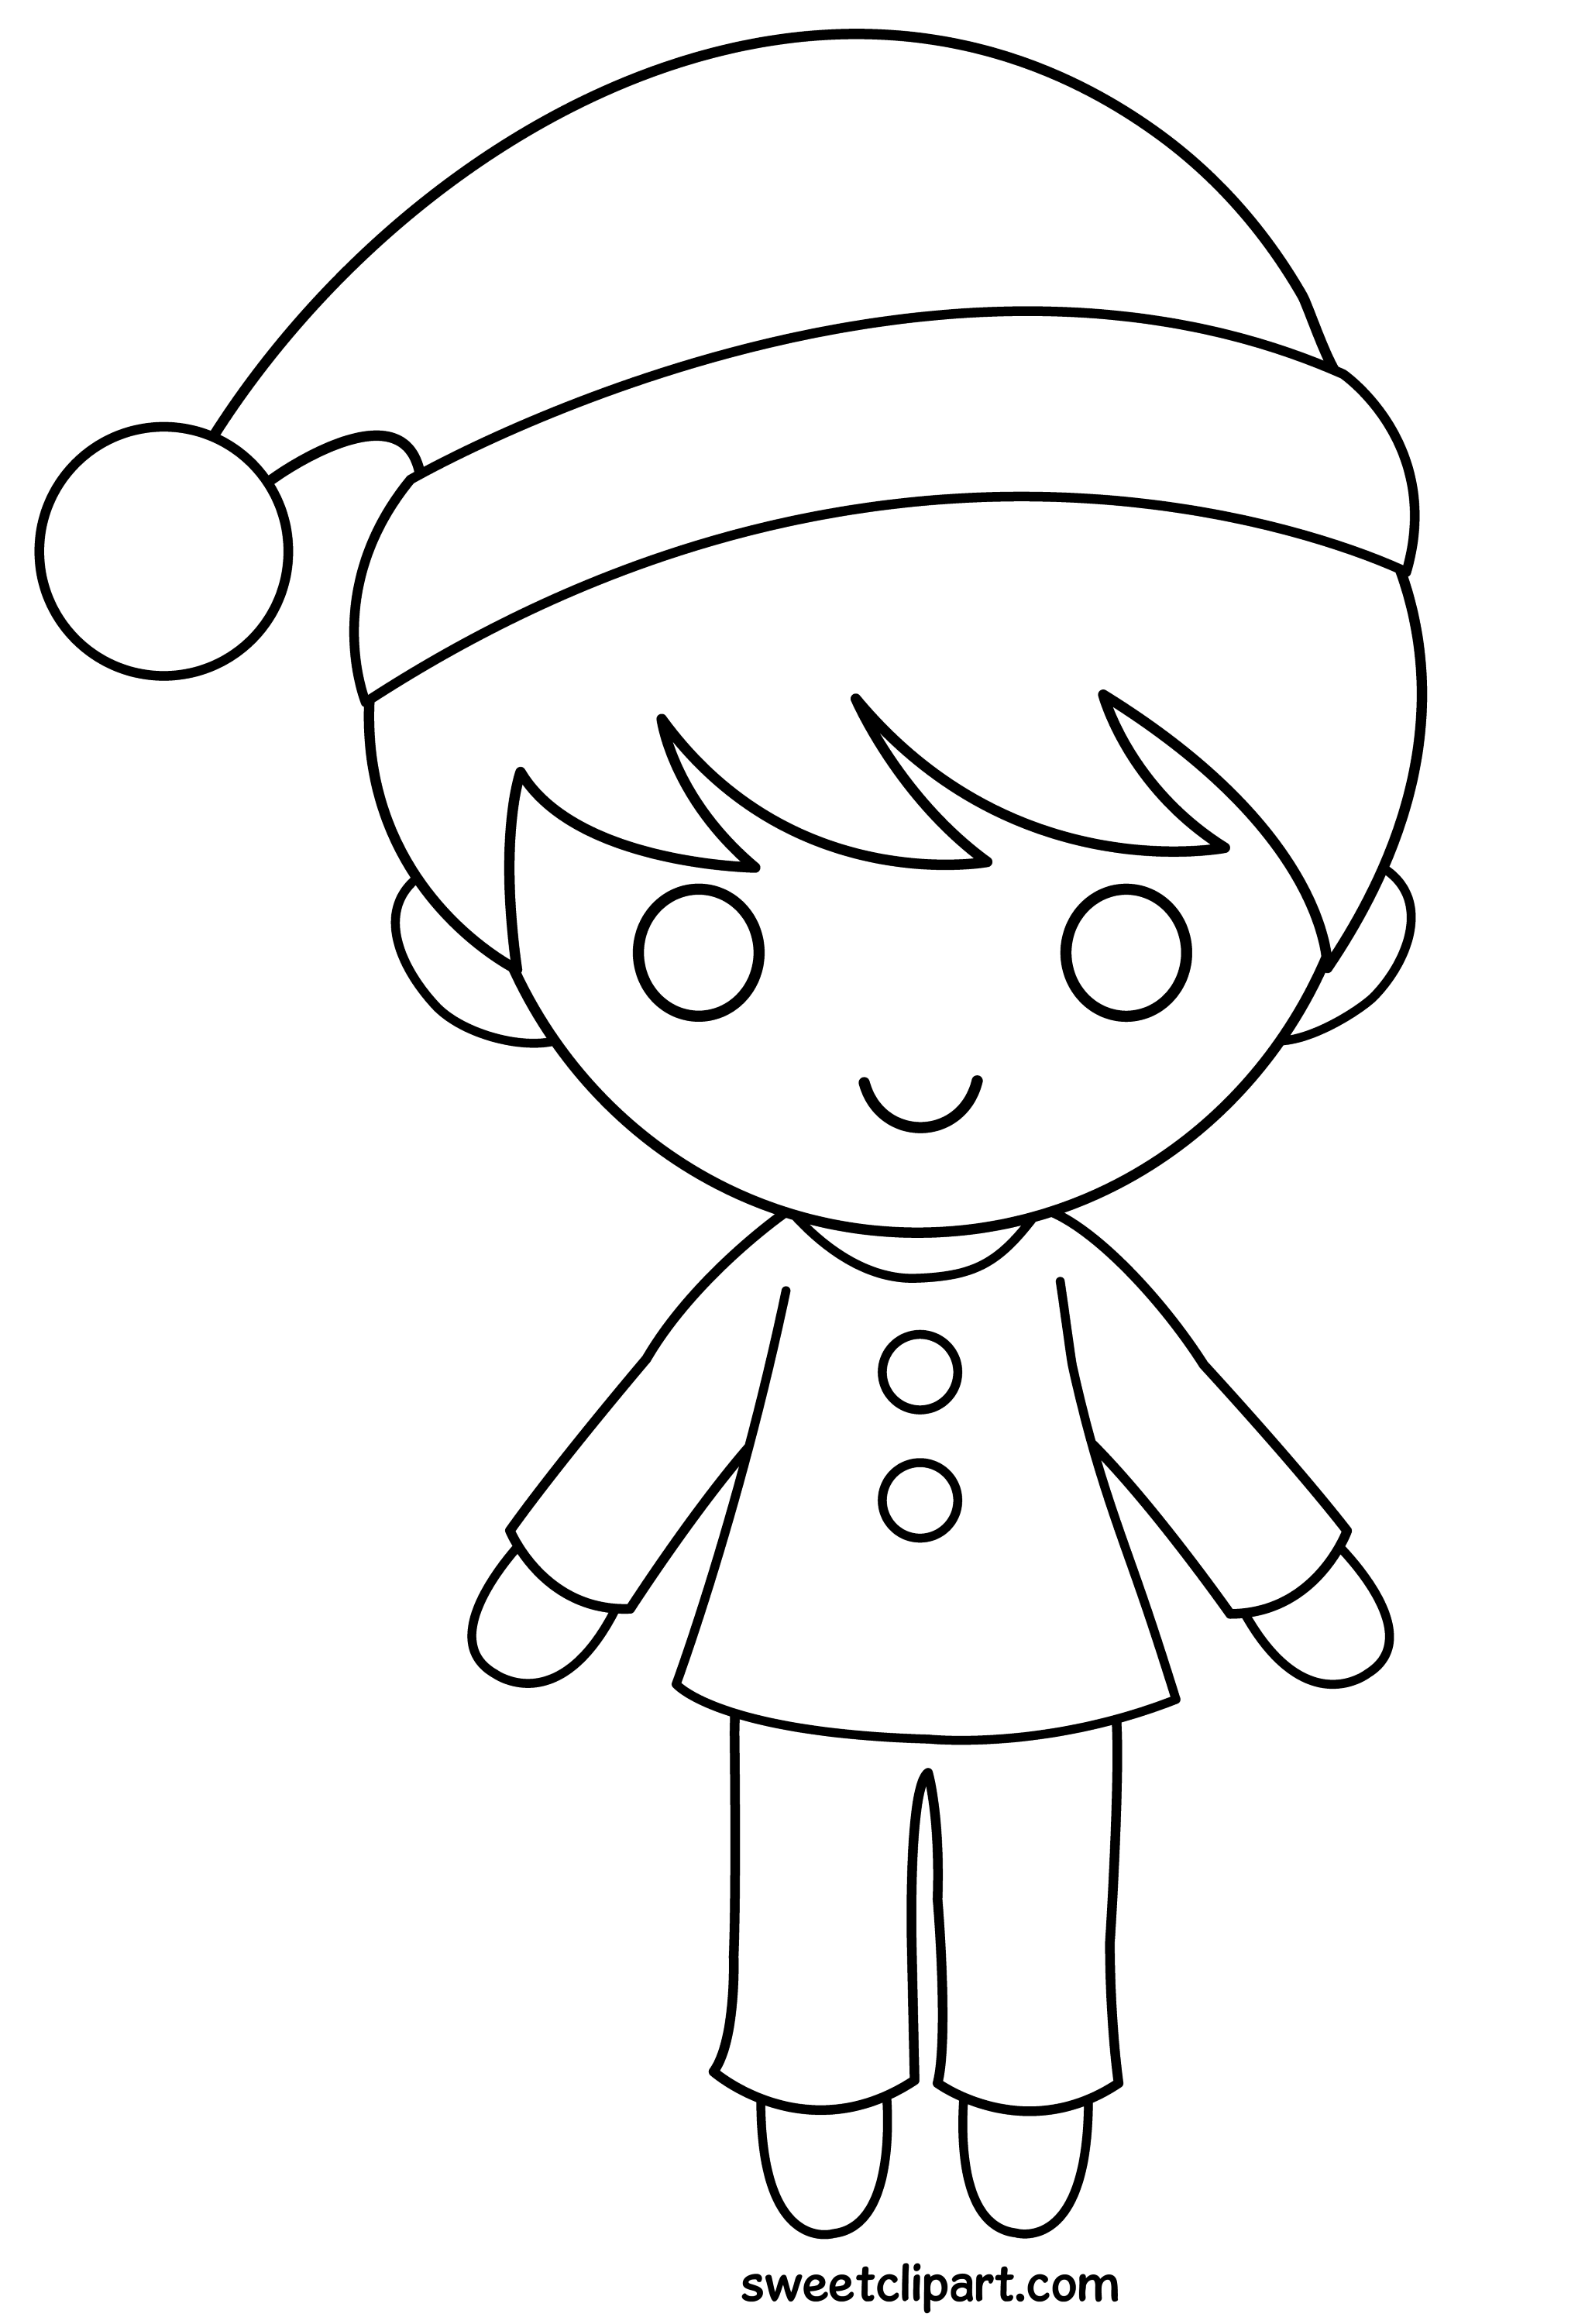 Christmas Boy Coloring Page - Free Clip Art